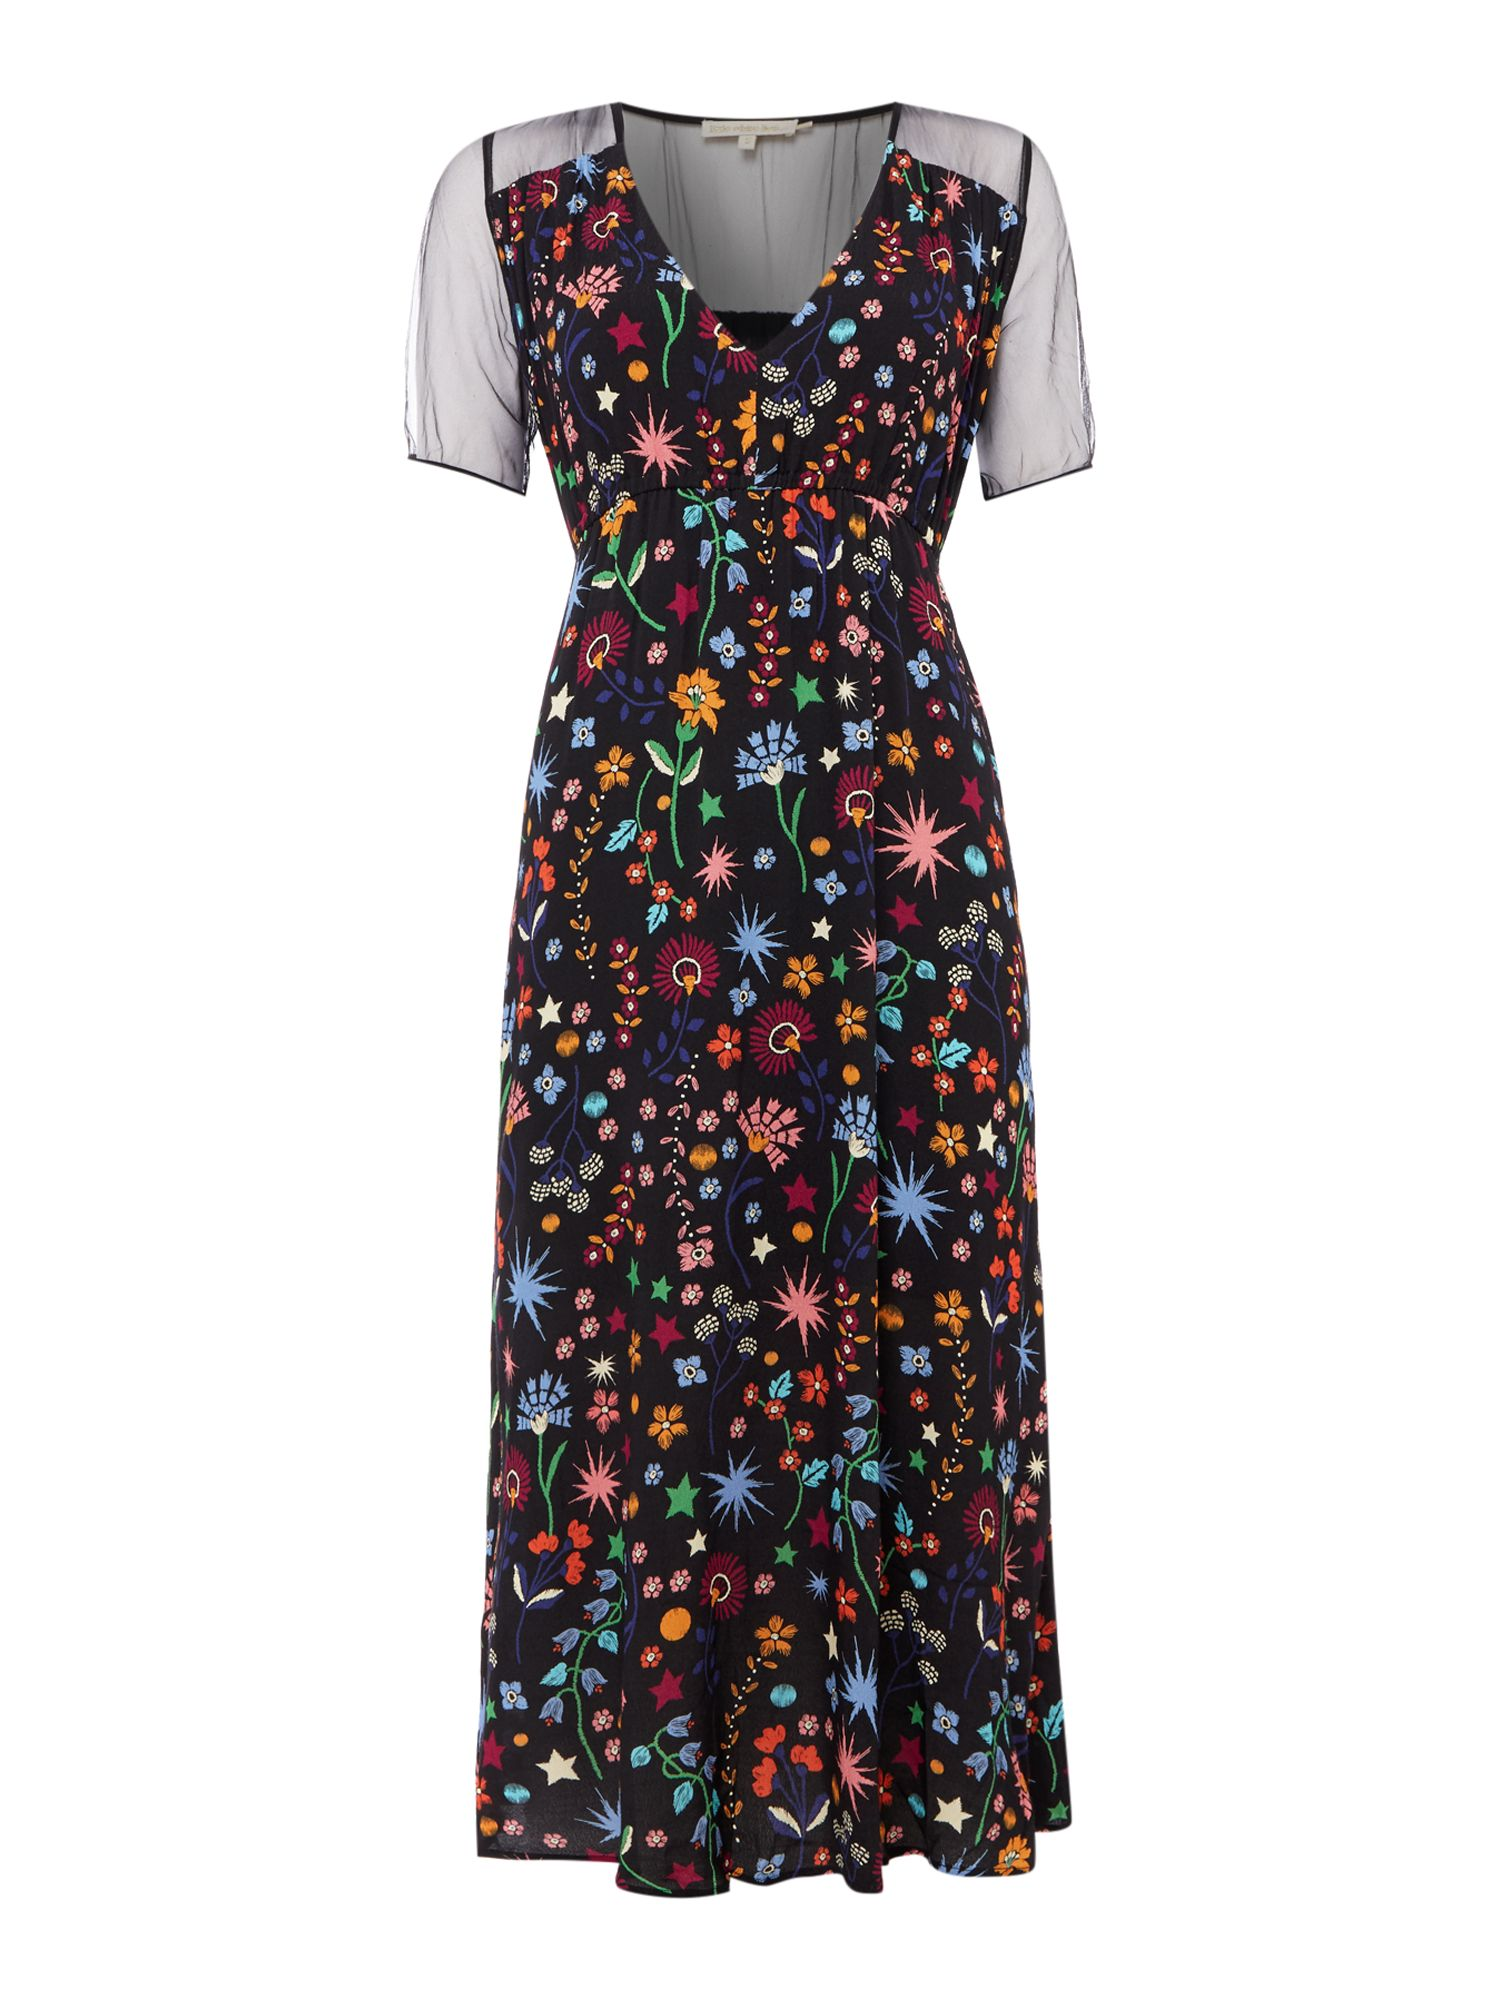 Little White Lies Short Sleeve Crew Neck Dress with Floral Print, Multi-Coloured